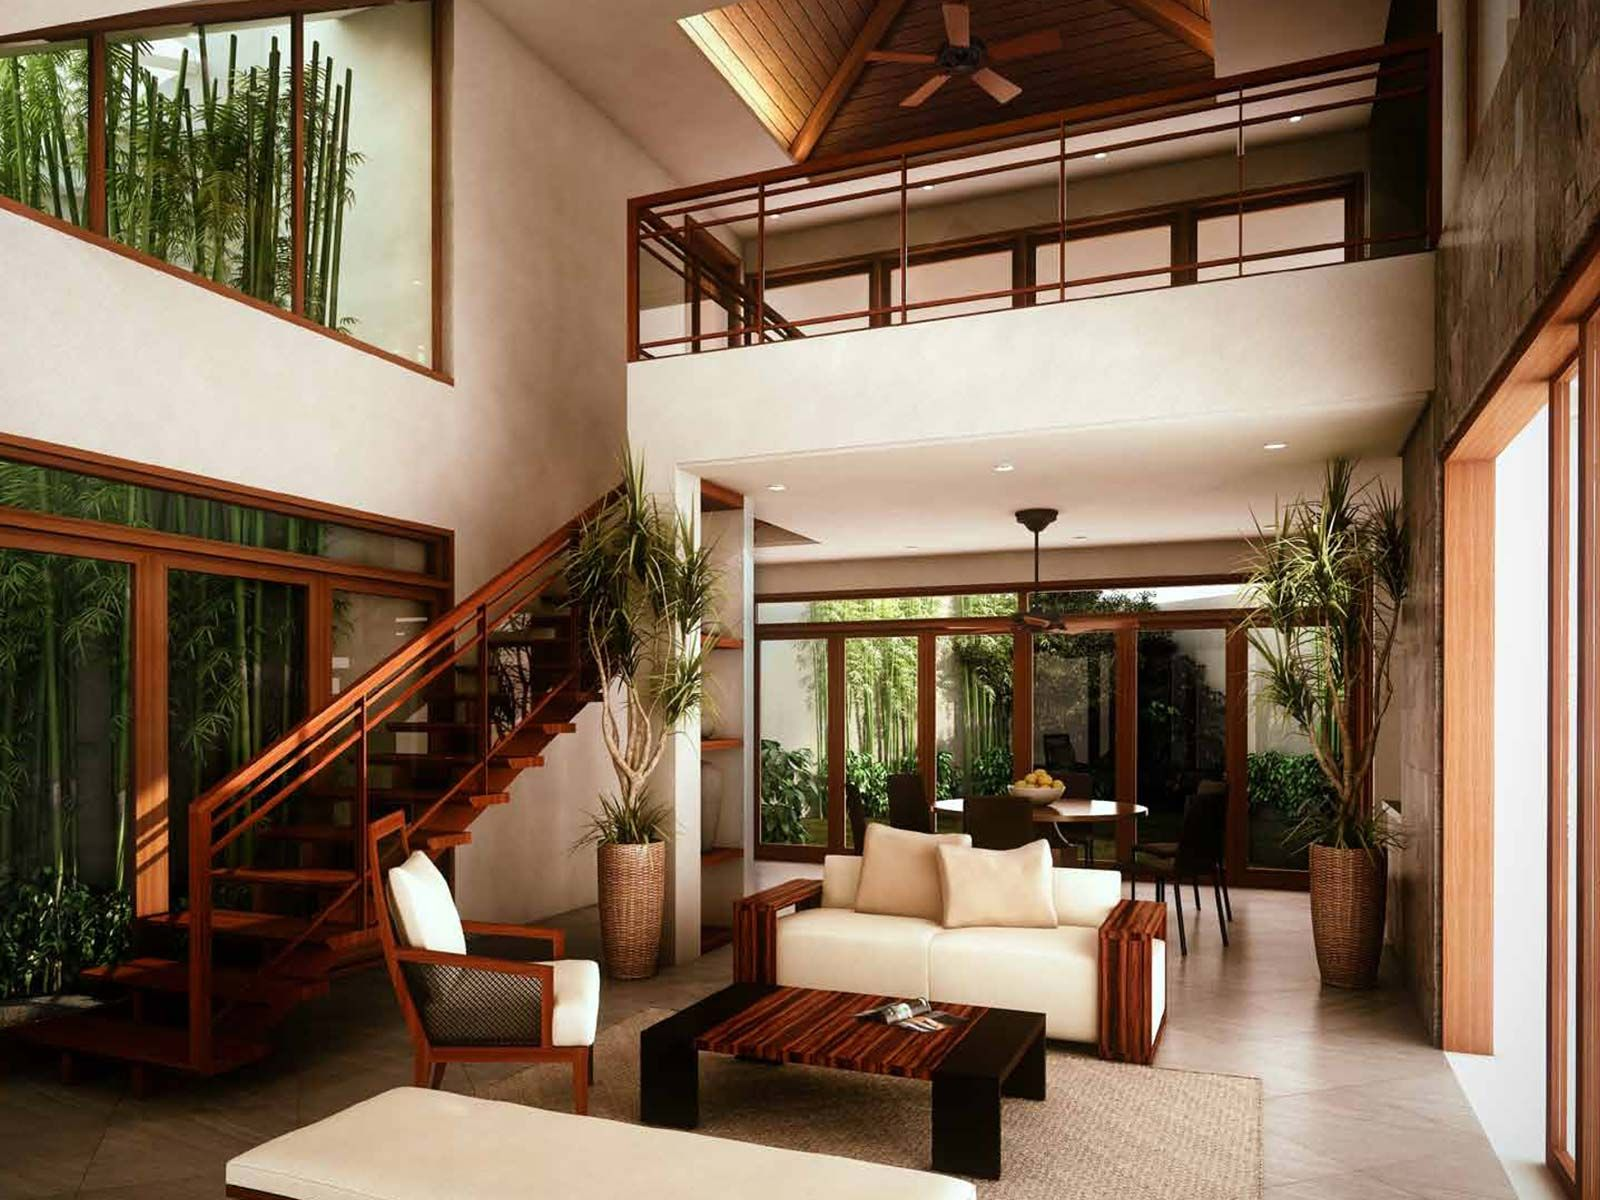 Pin By Bianca Magtoto On Home Tropical House Design Modern Tropical House Filipino Interior Design